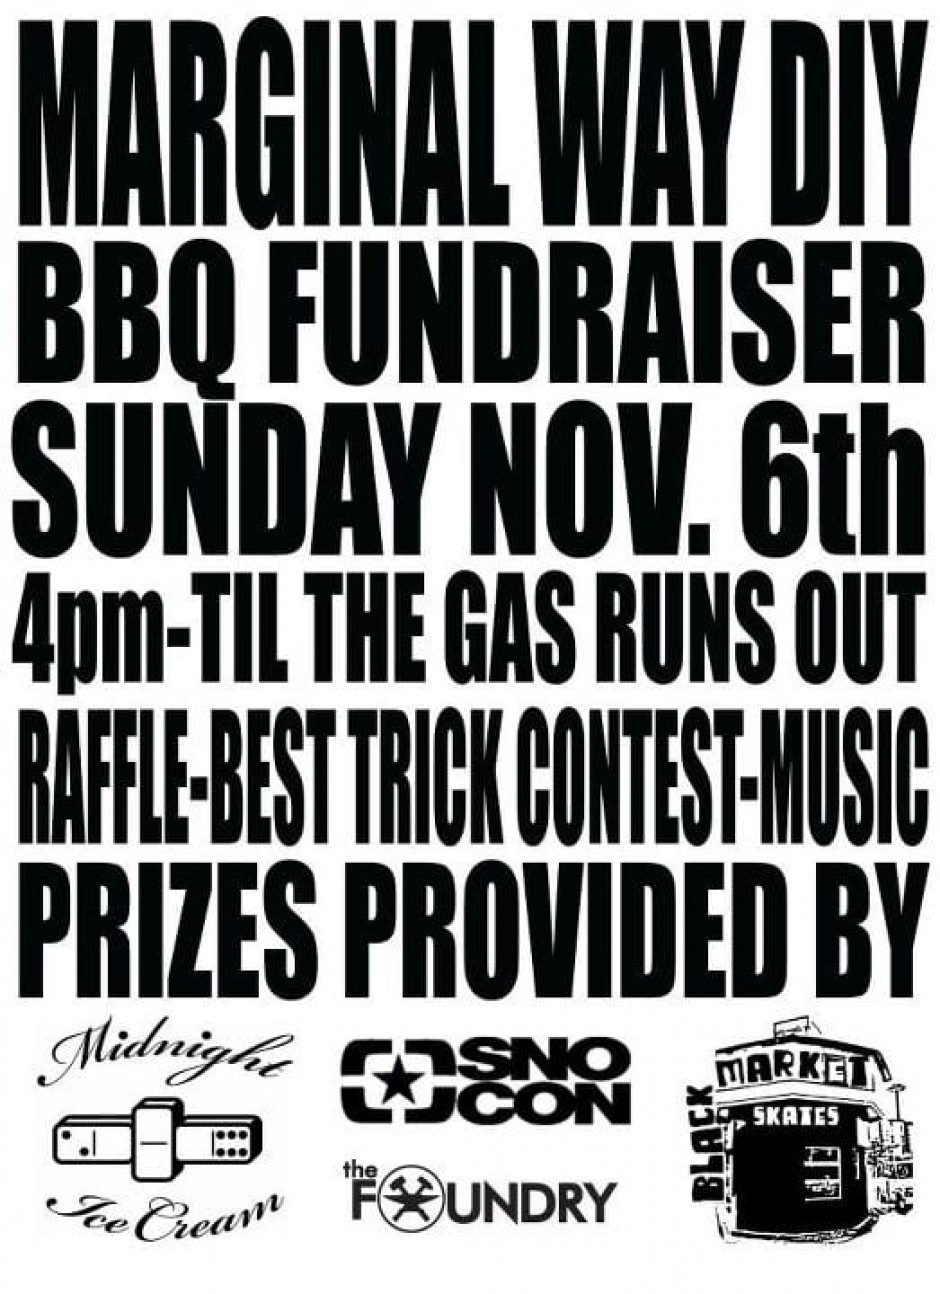 Marginal Way BBQ Fundraiser